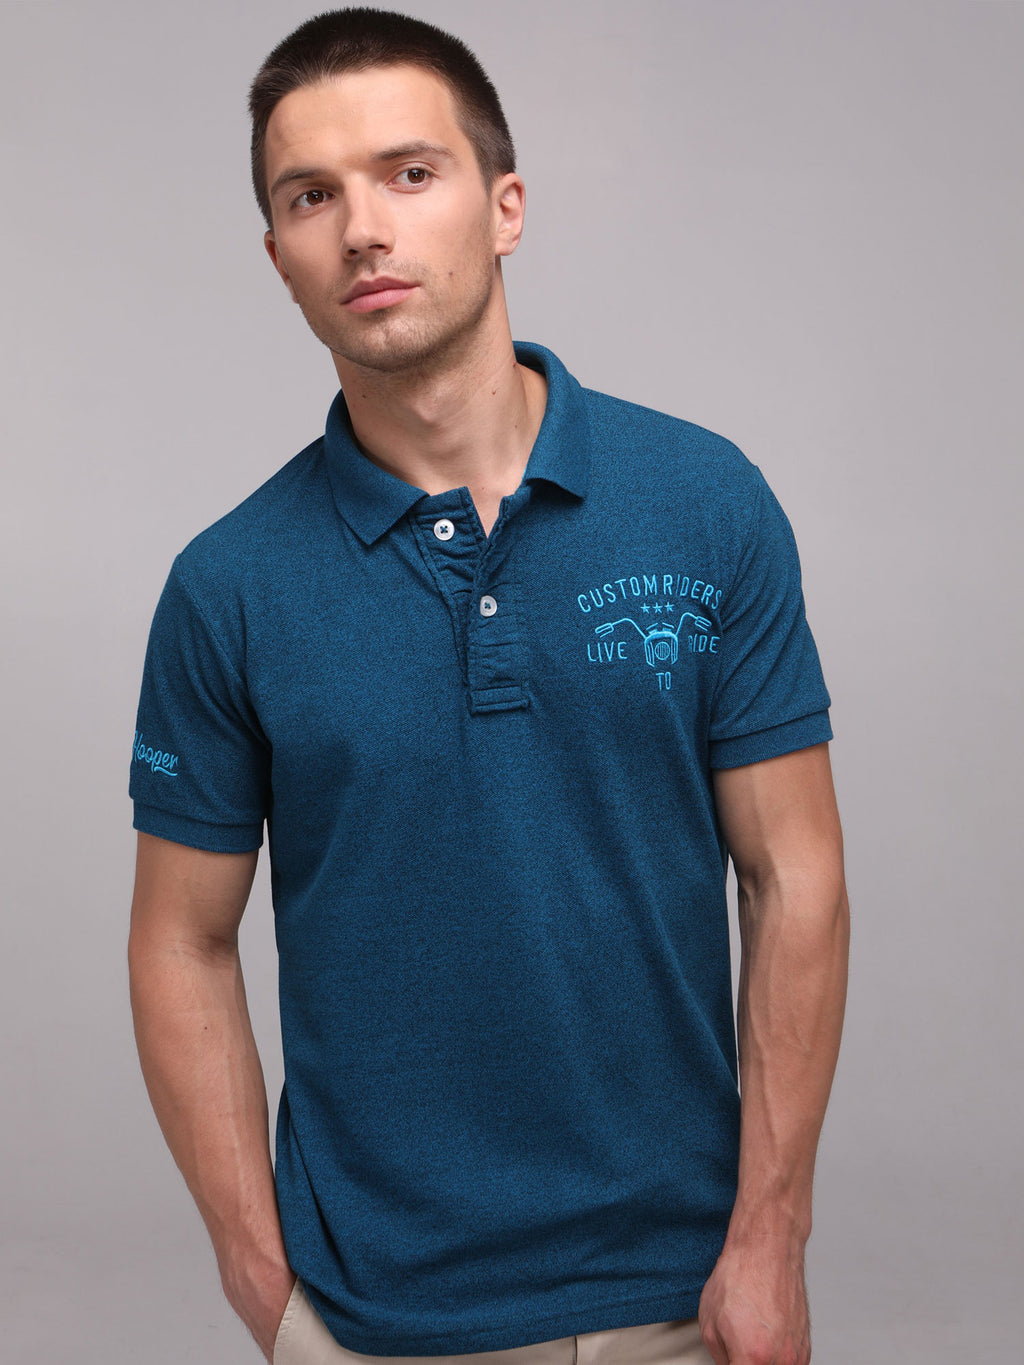 Rock Hooper Men's Solid Collar Cotton Turquoise Half Sleeve Polo T-Shirt